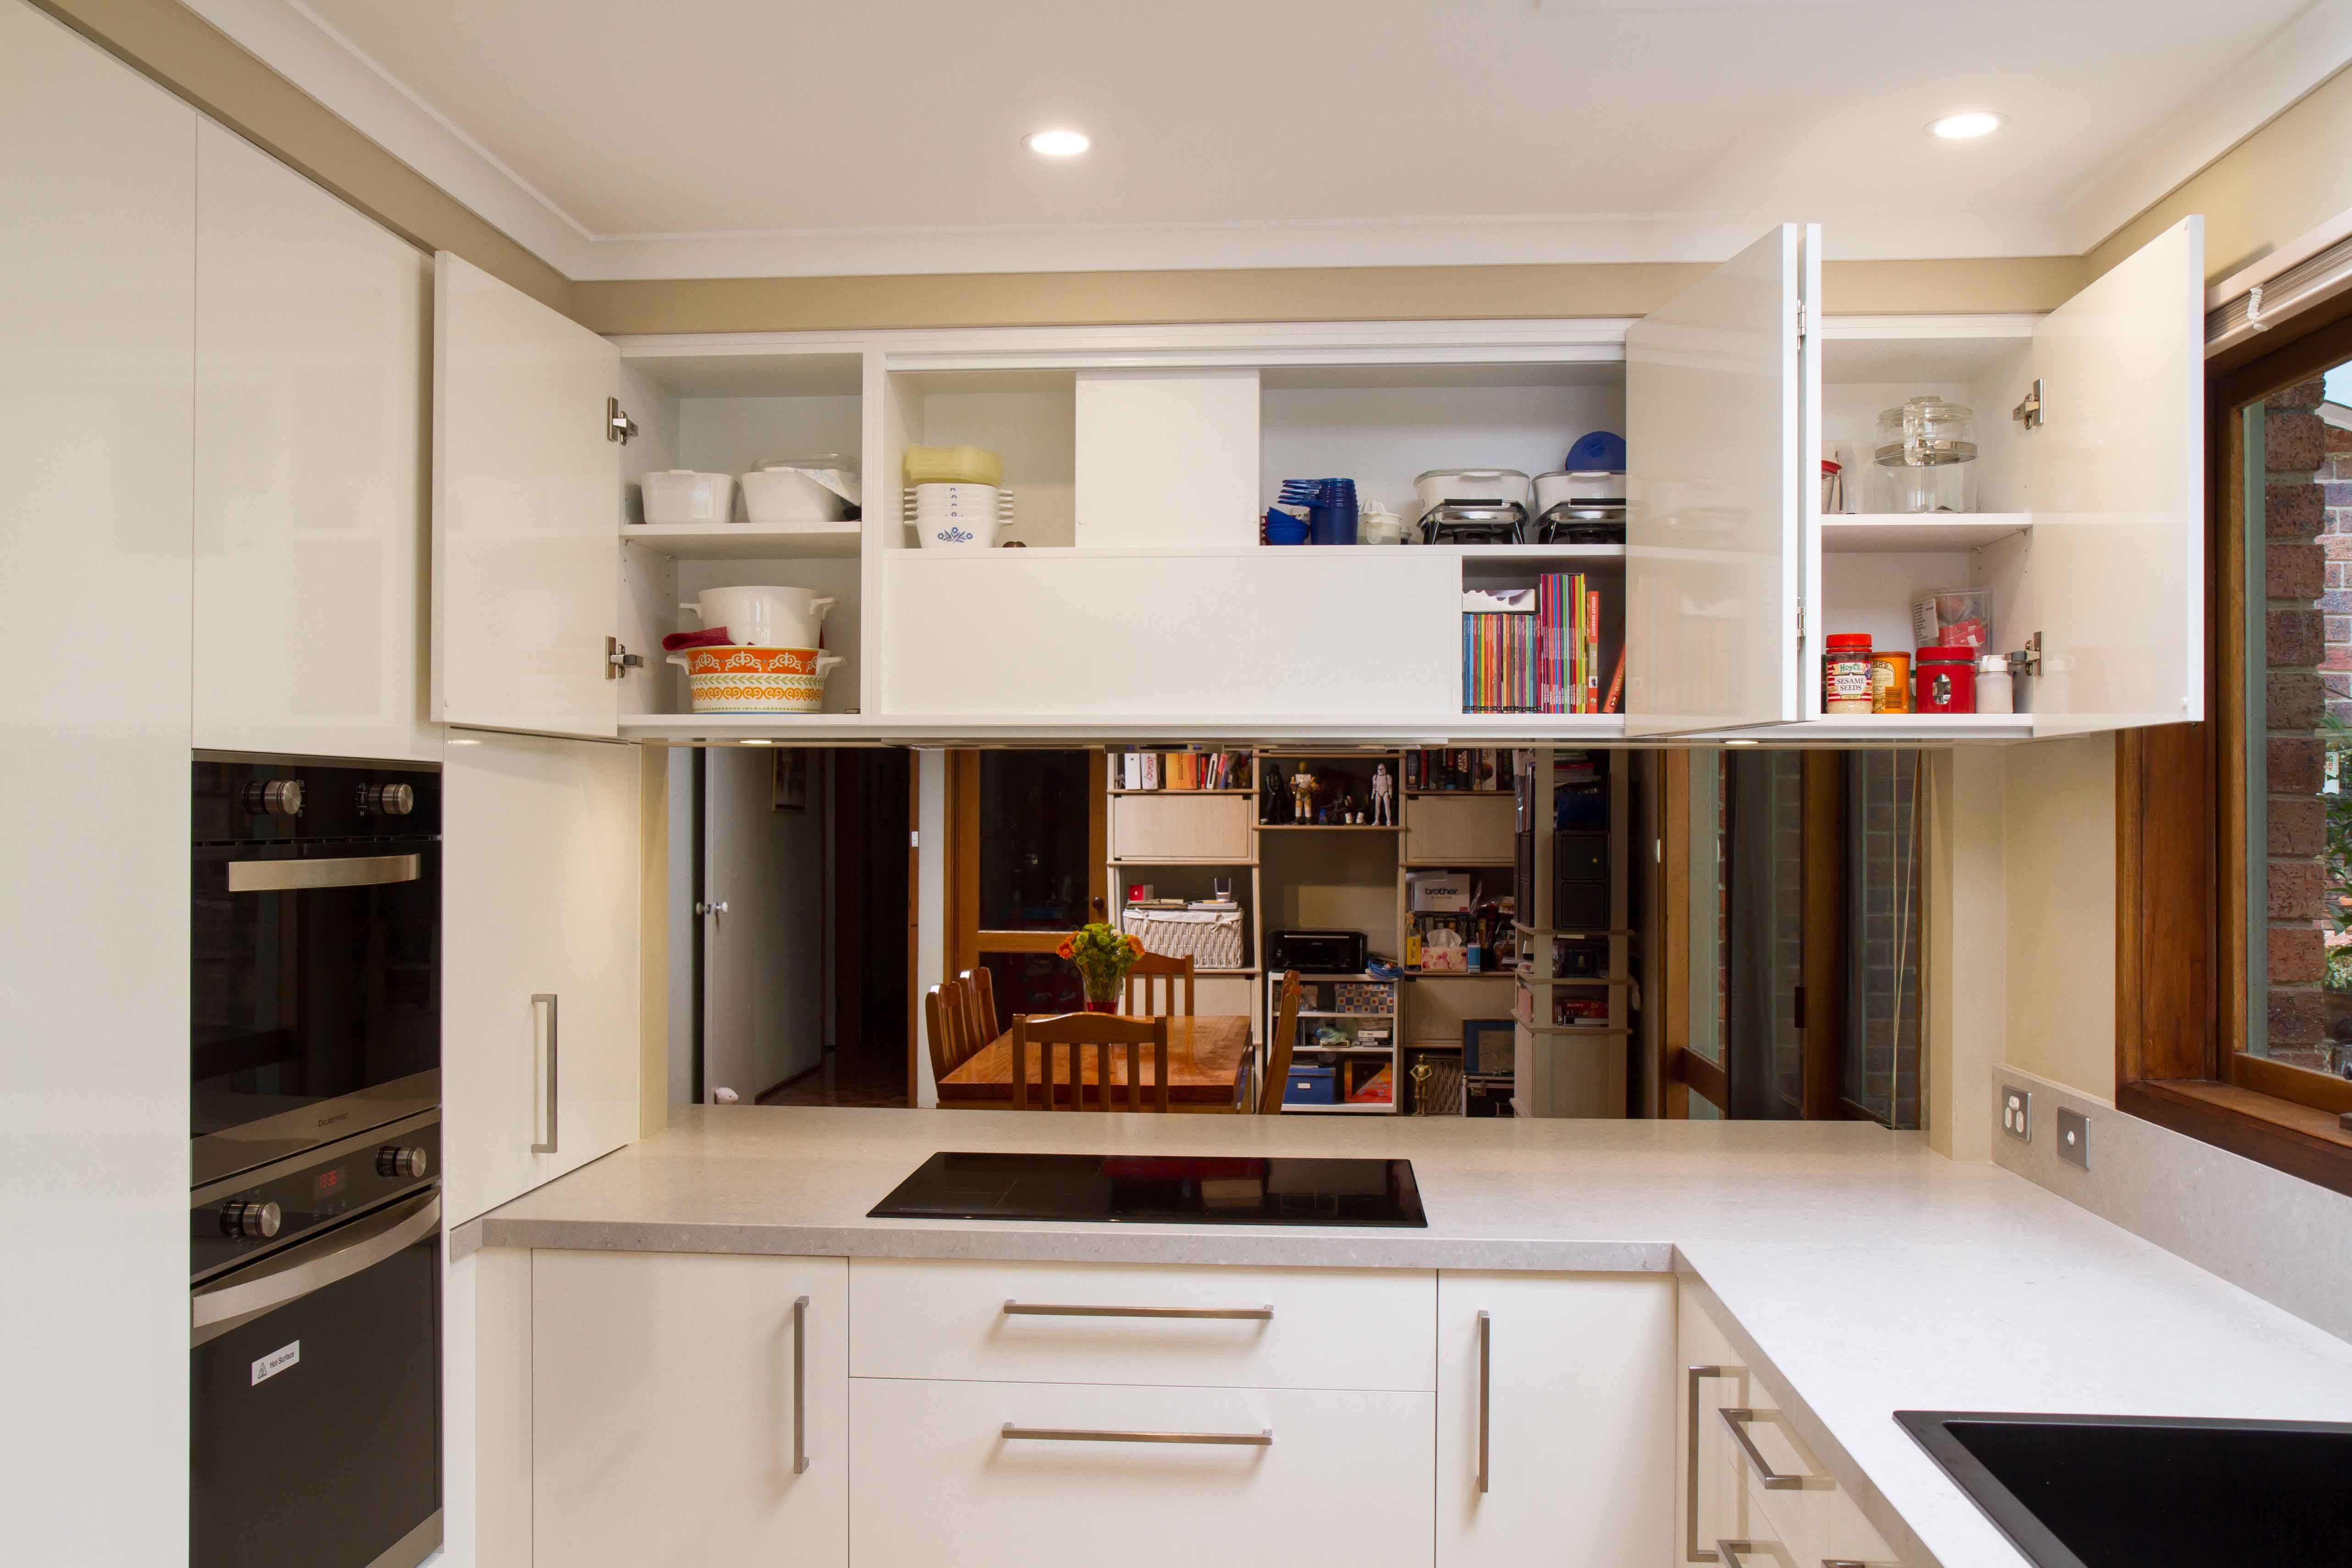 Contemporary kitchen with large servery into the dining